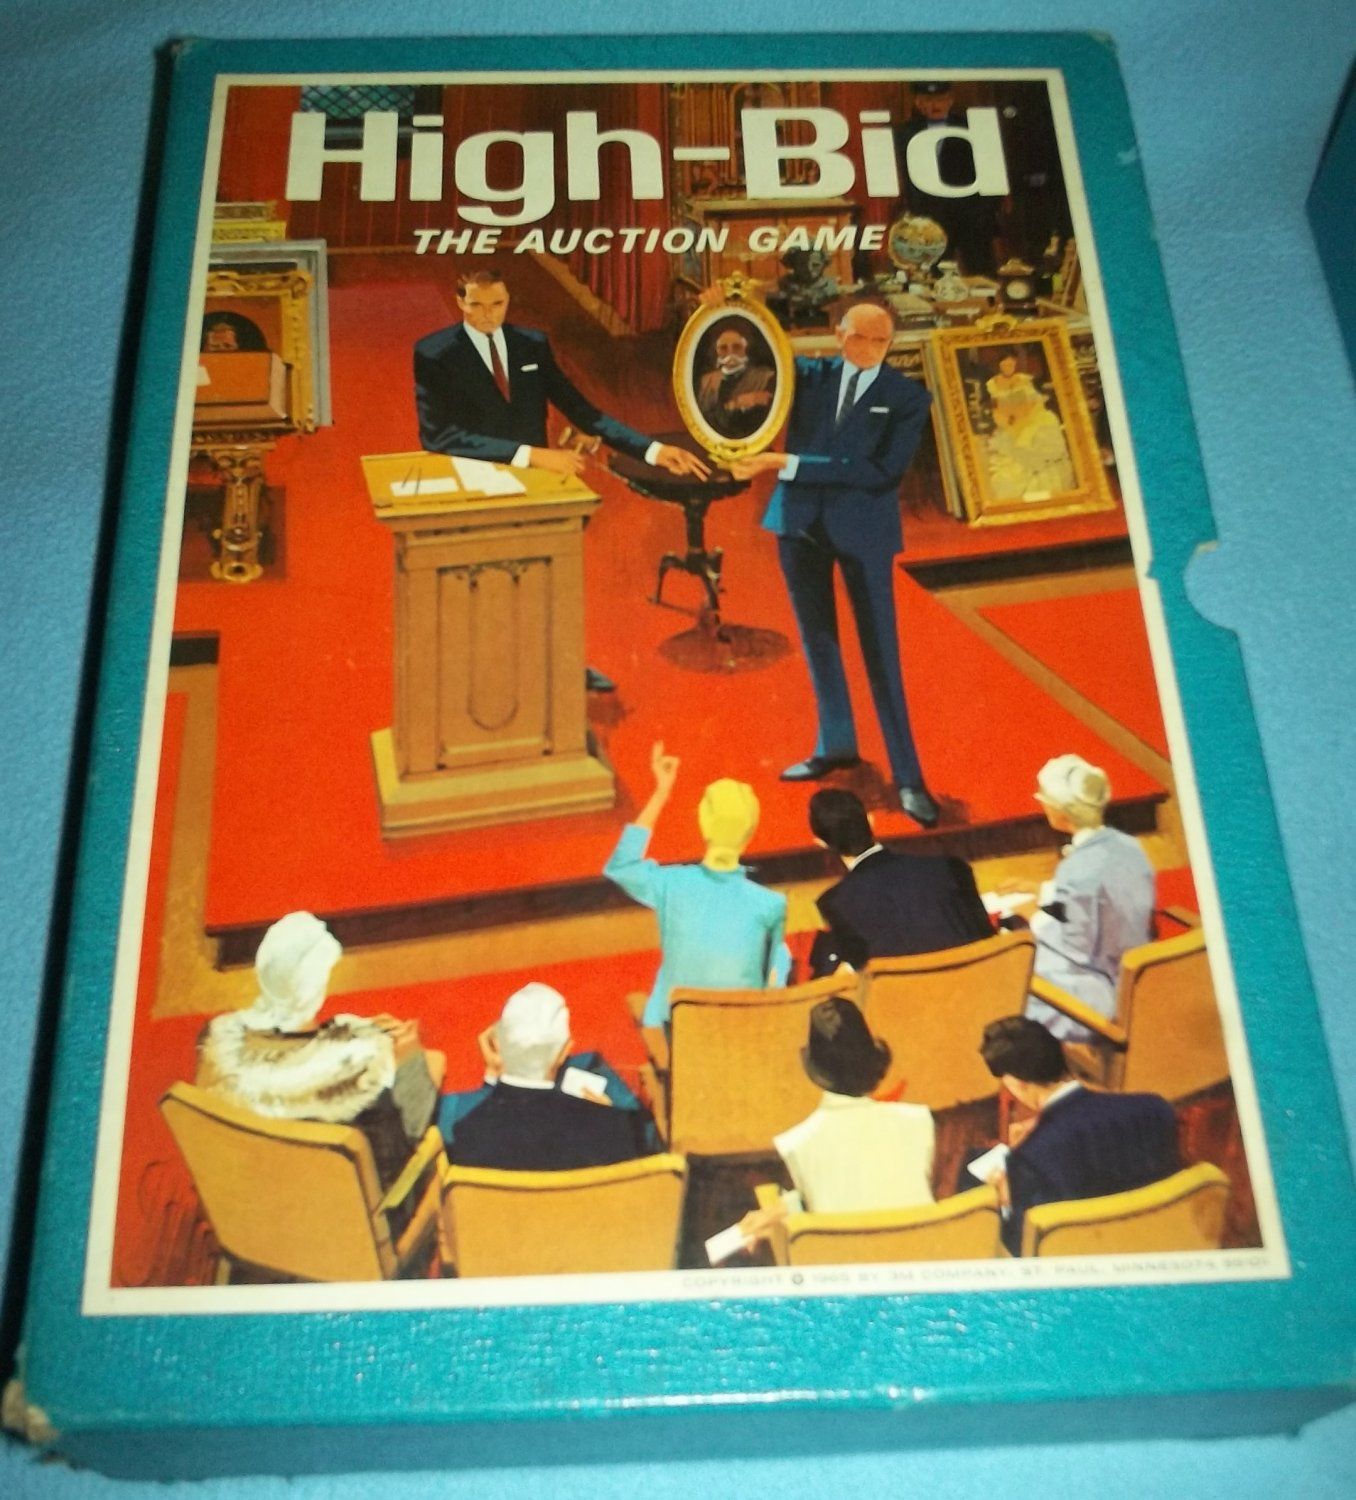 HIGH BID 1965 Vintage Bookshelf BOARD GAME 3M Company AUCTION Art Antiques